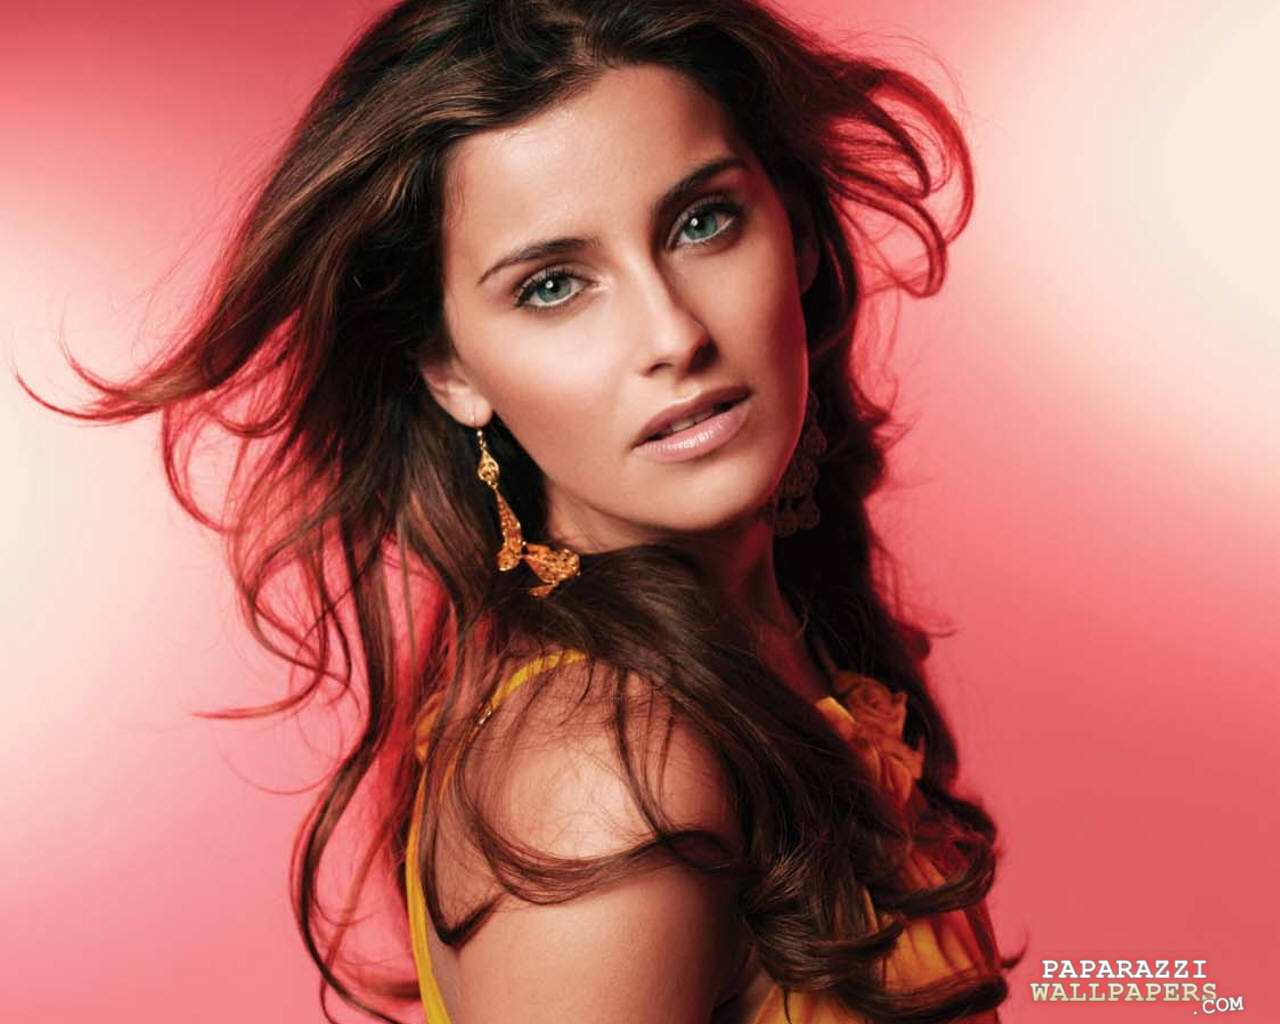 nelly furtado wallpapers 012